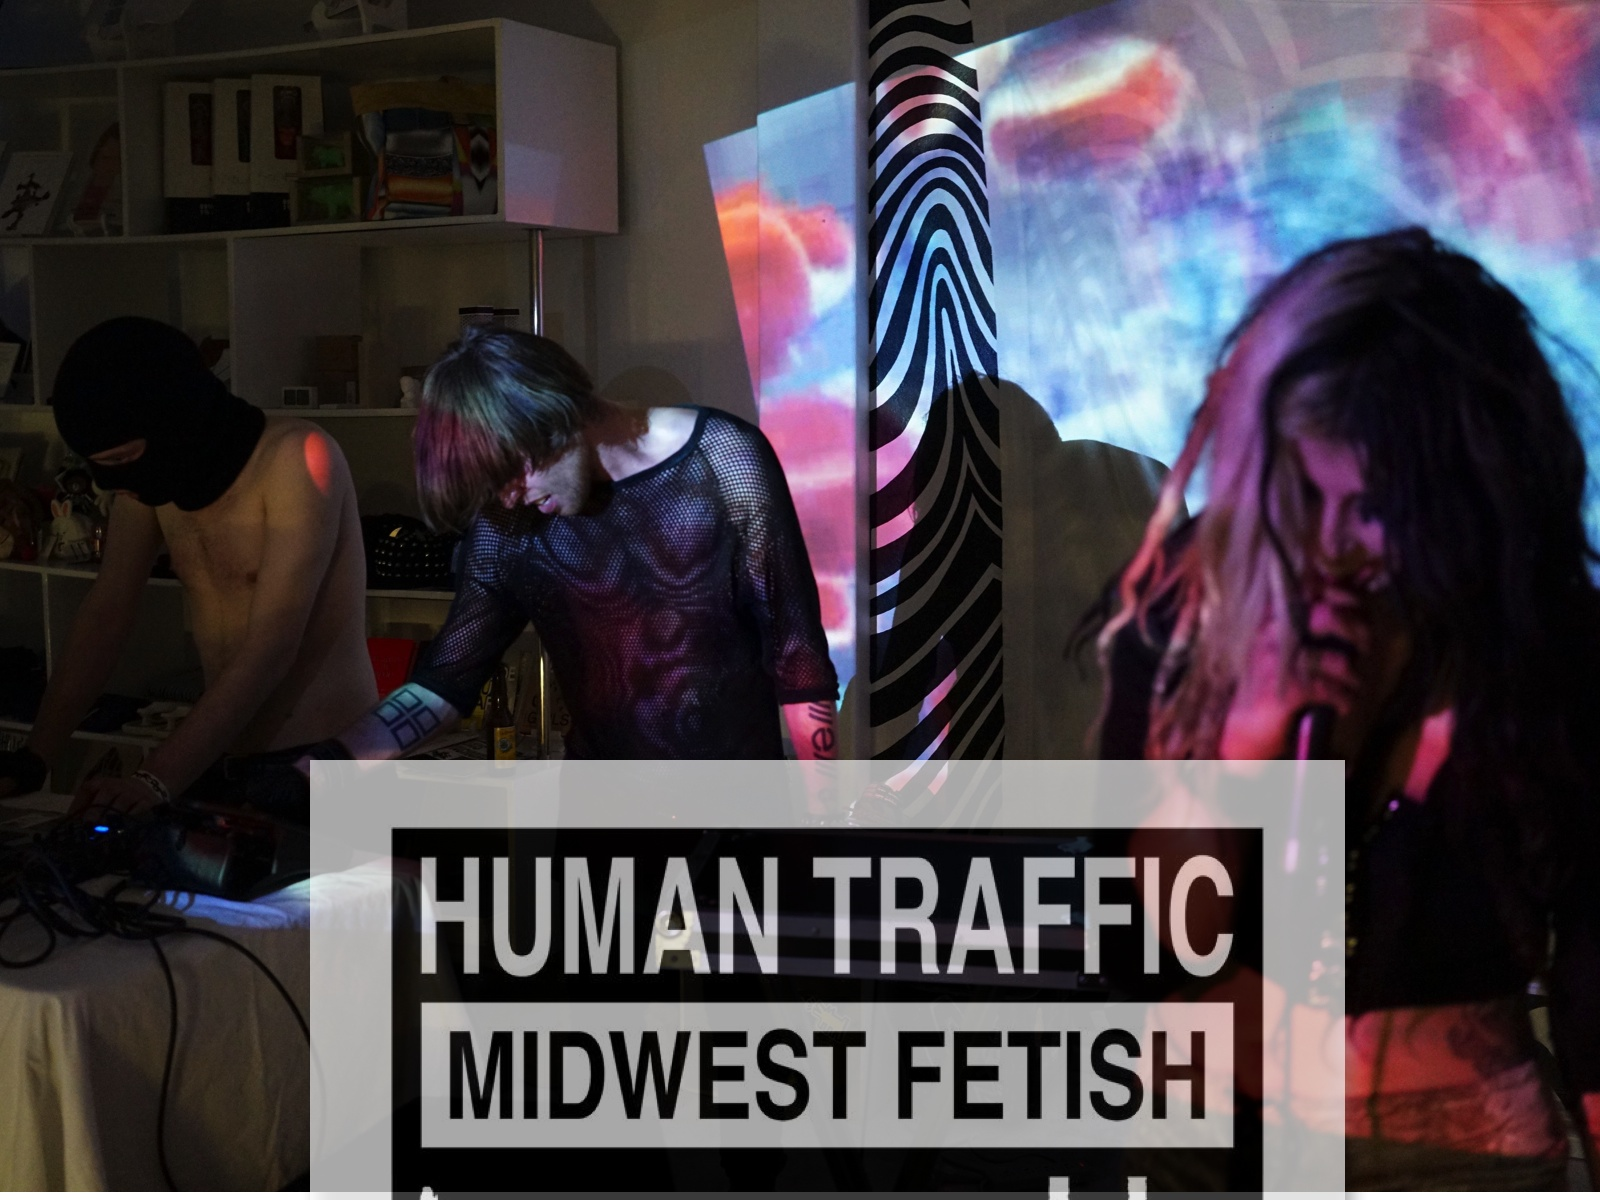 HUMAN TRAFFIC MIDWEST FETISH